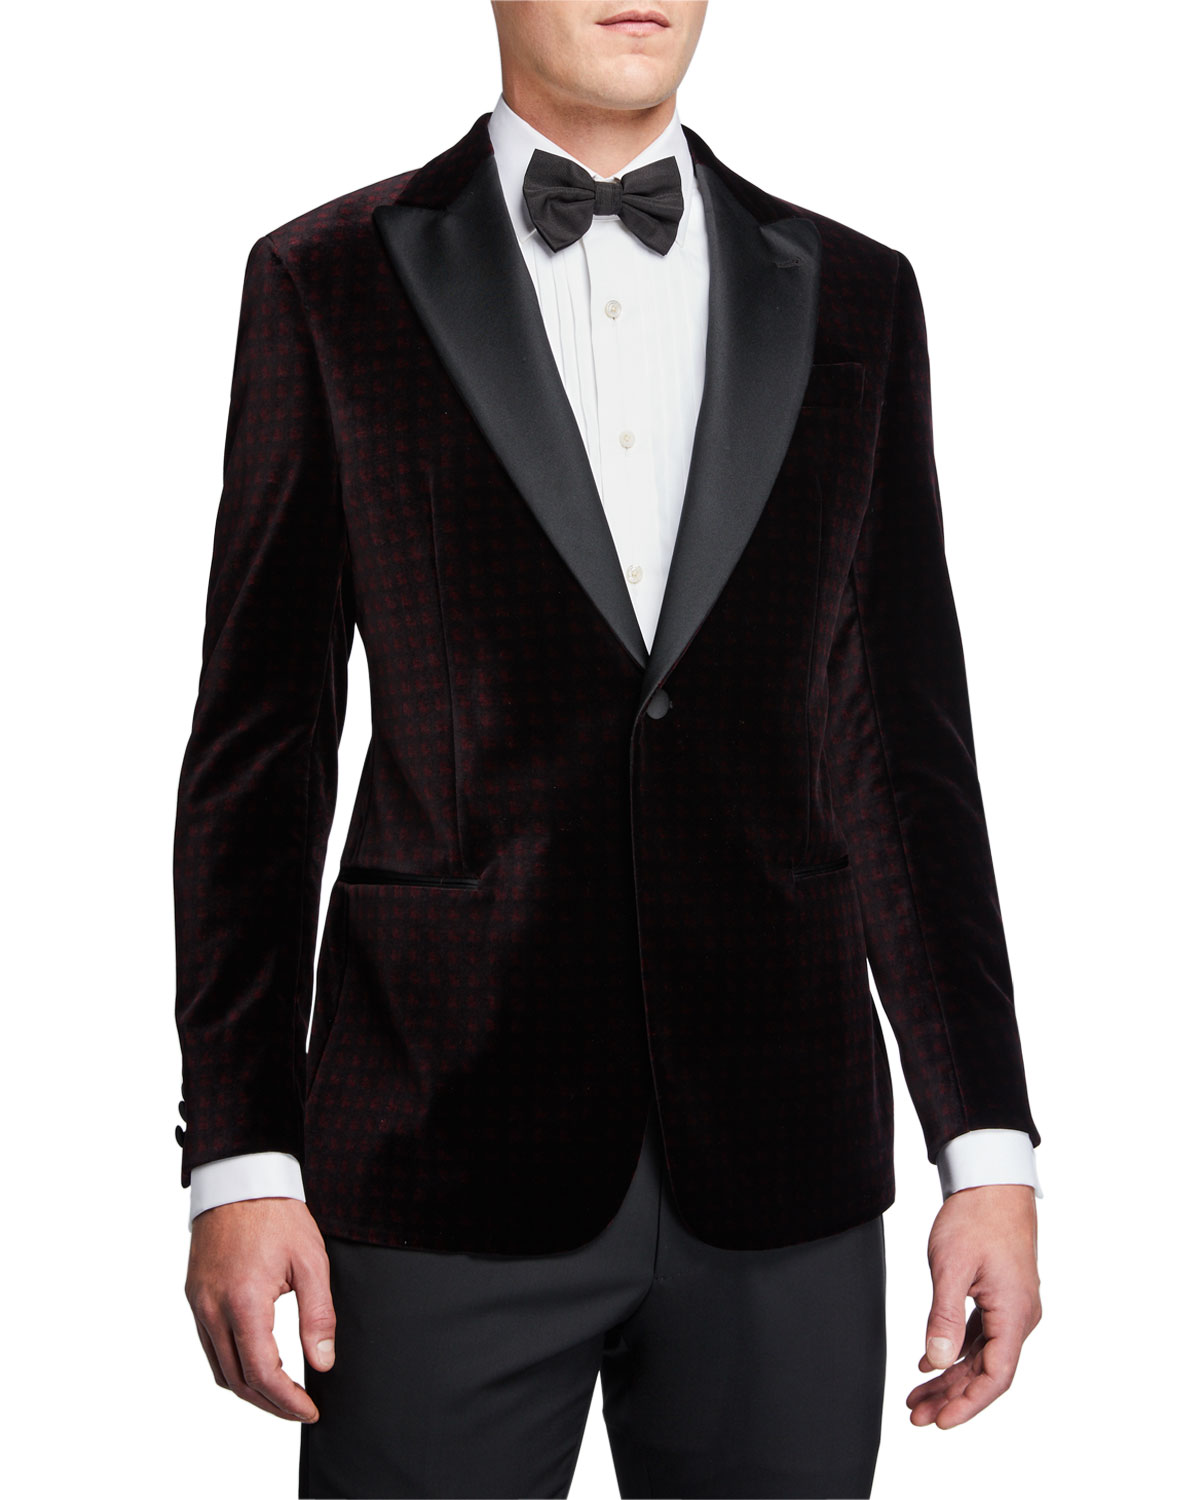 Emporio Armani Jackets MEN'S G-LINE GEO-PATTERN VELVET DINNER JACKET